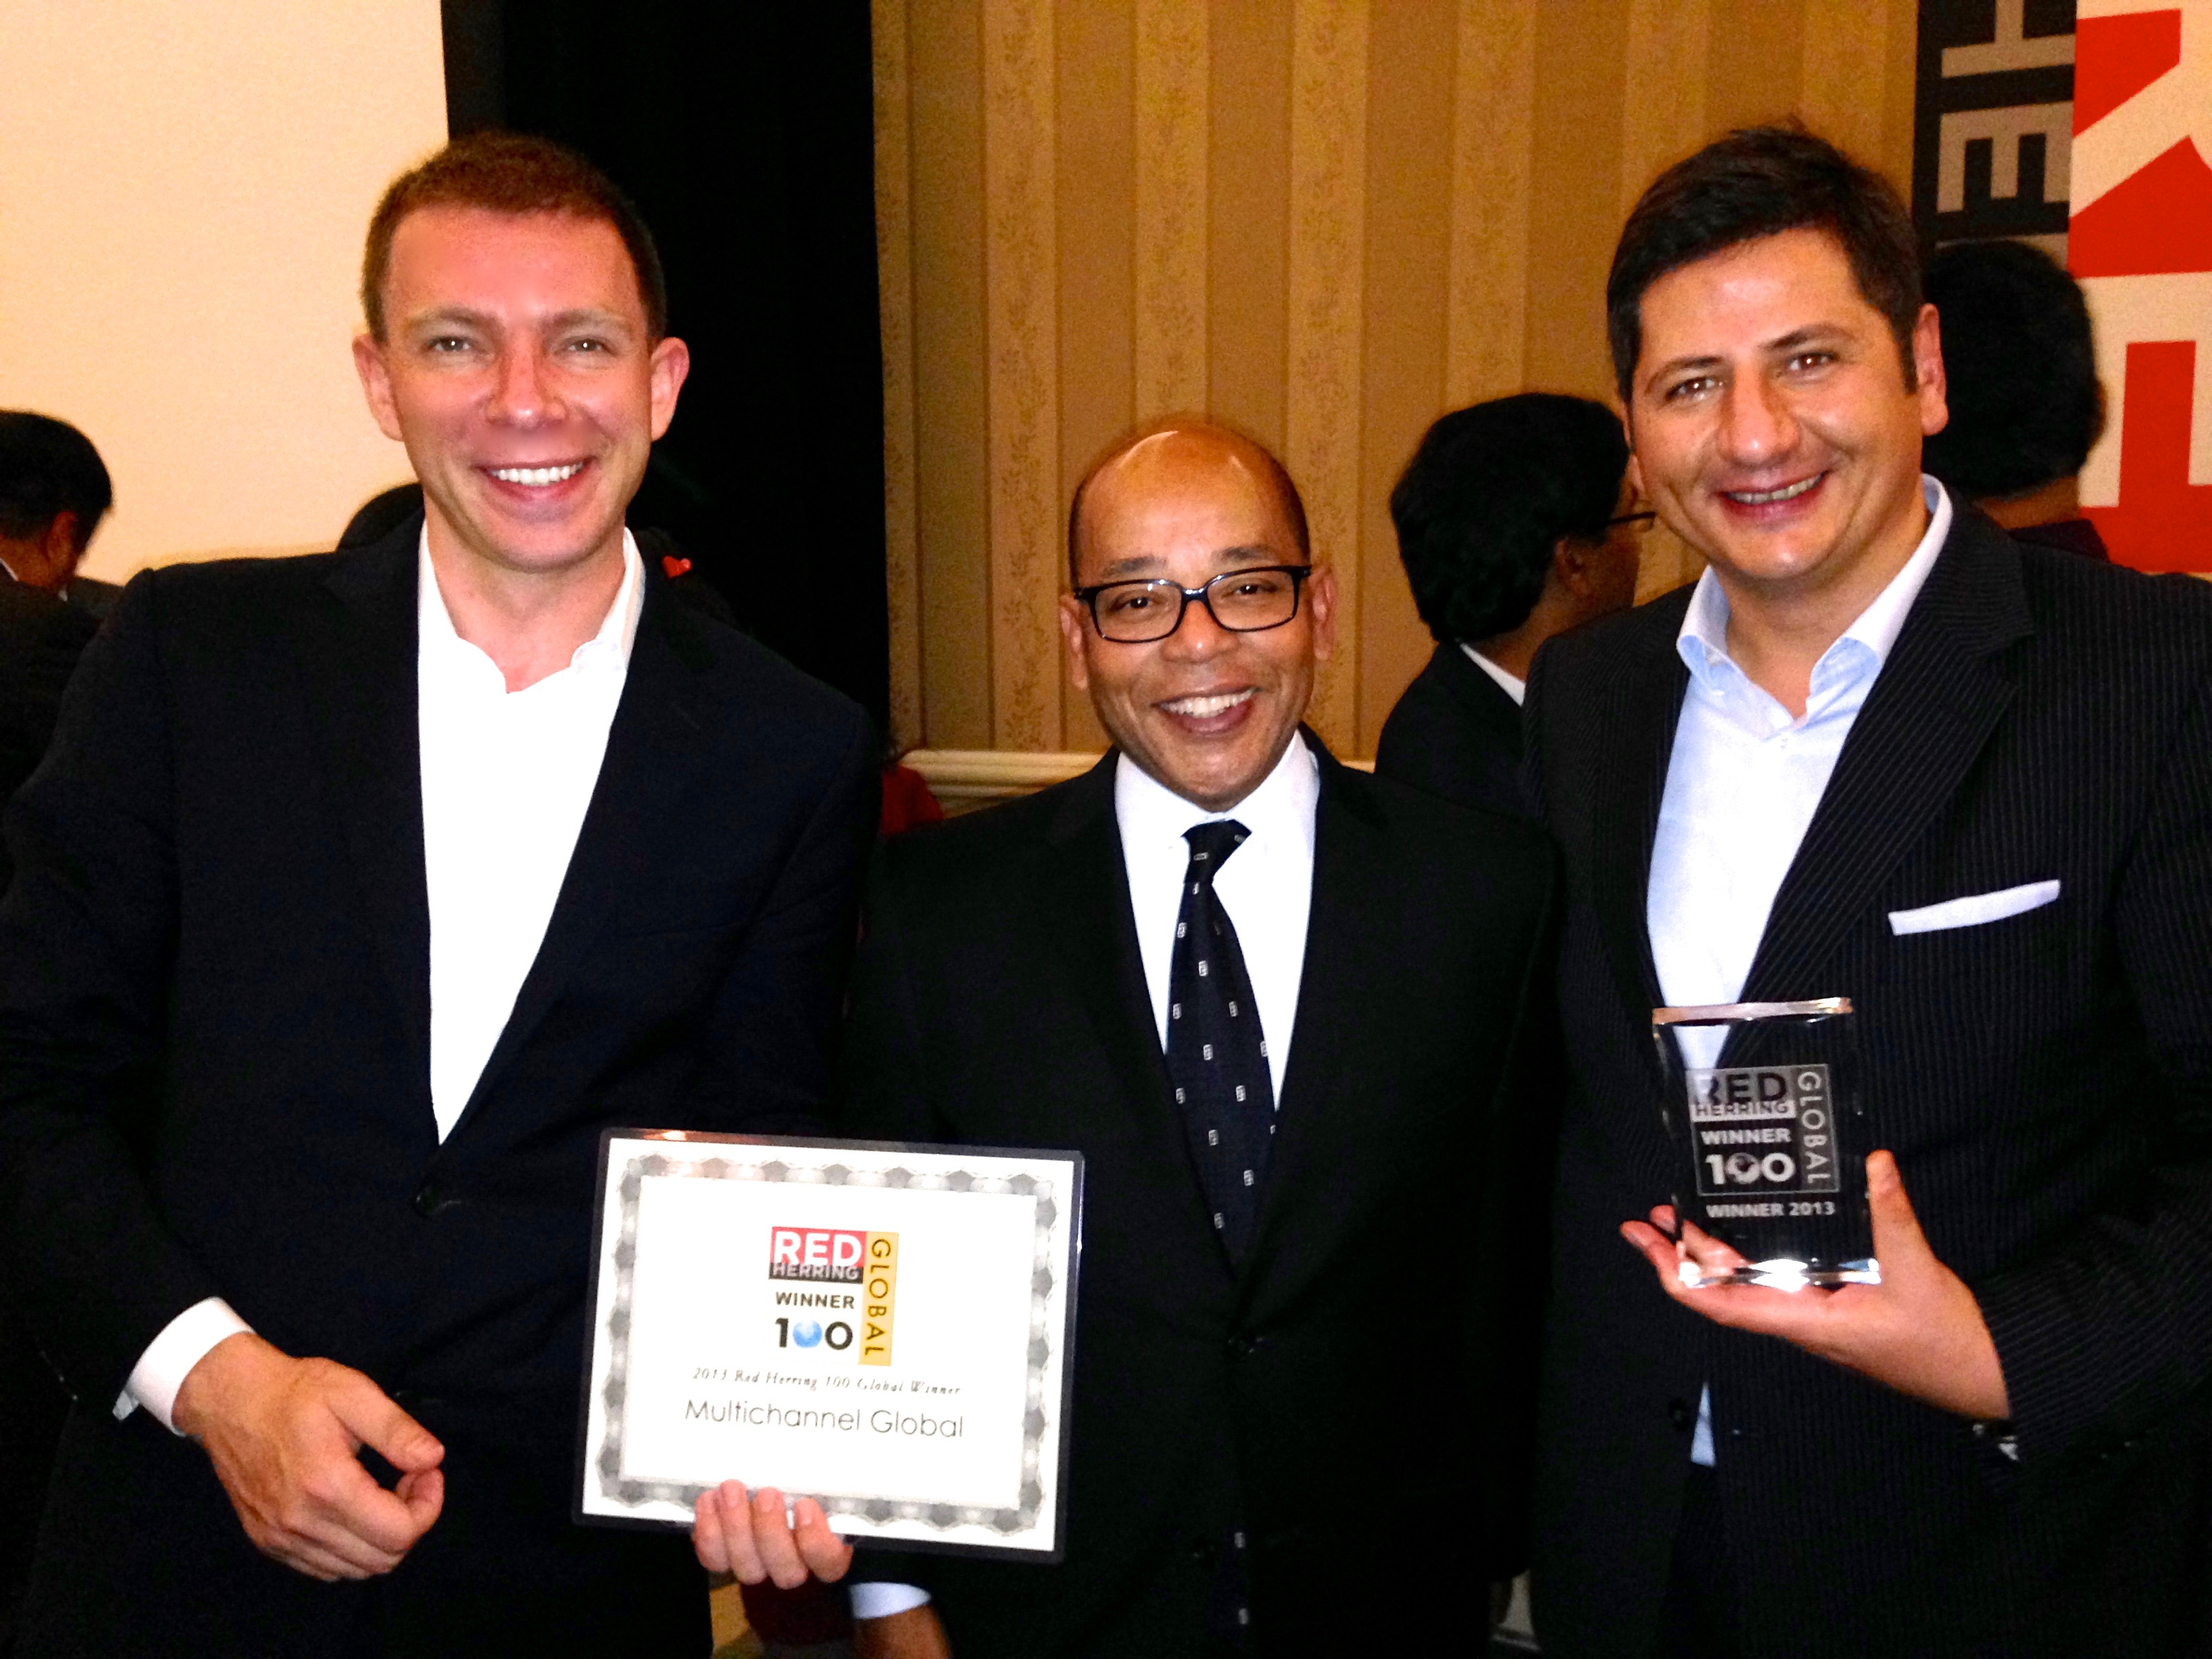 Dmitry Fedotov, winner of Red Herring Global with Alex Vieux and Thomas Molnar at Santa Monica award ceremony.